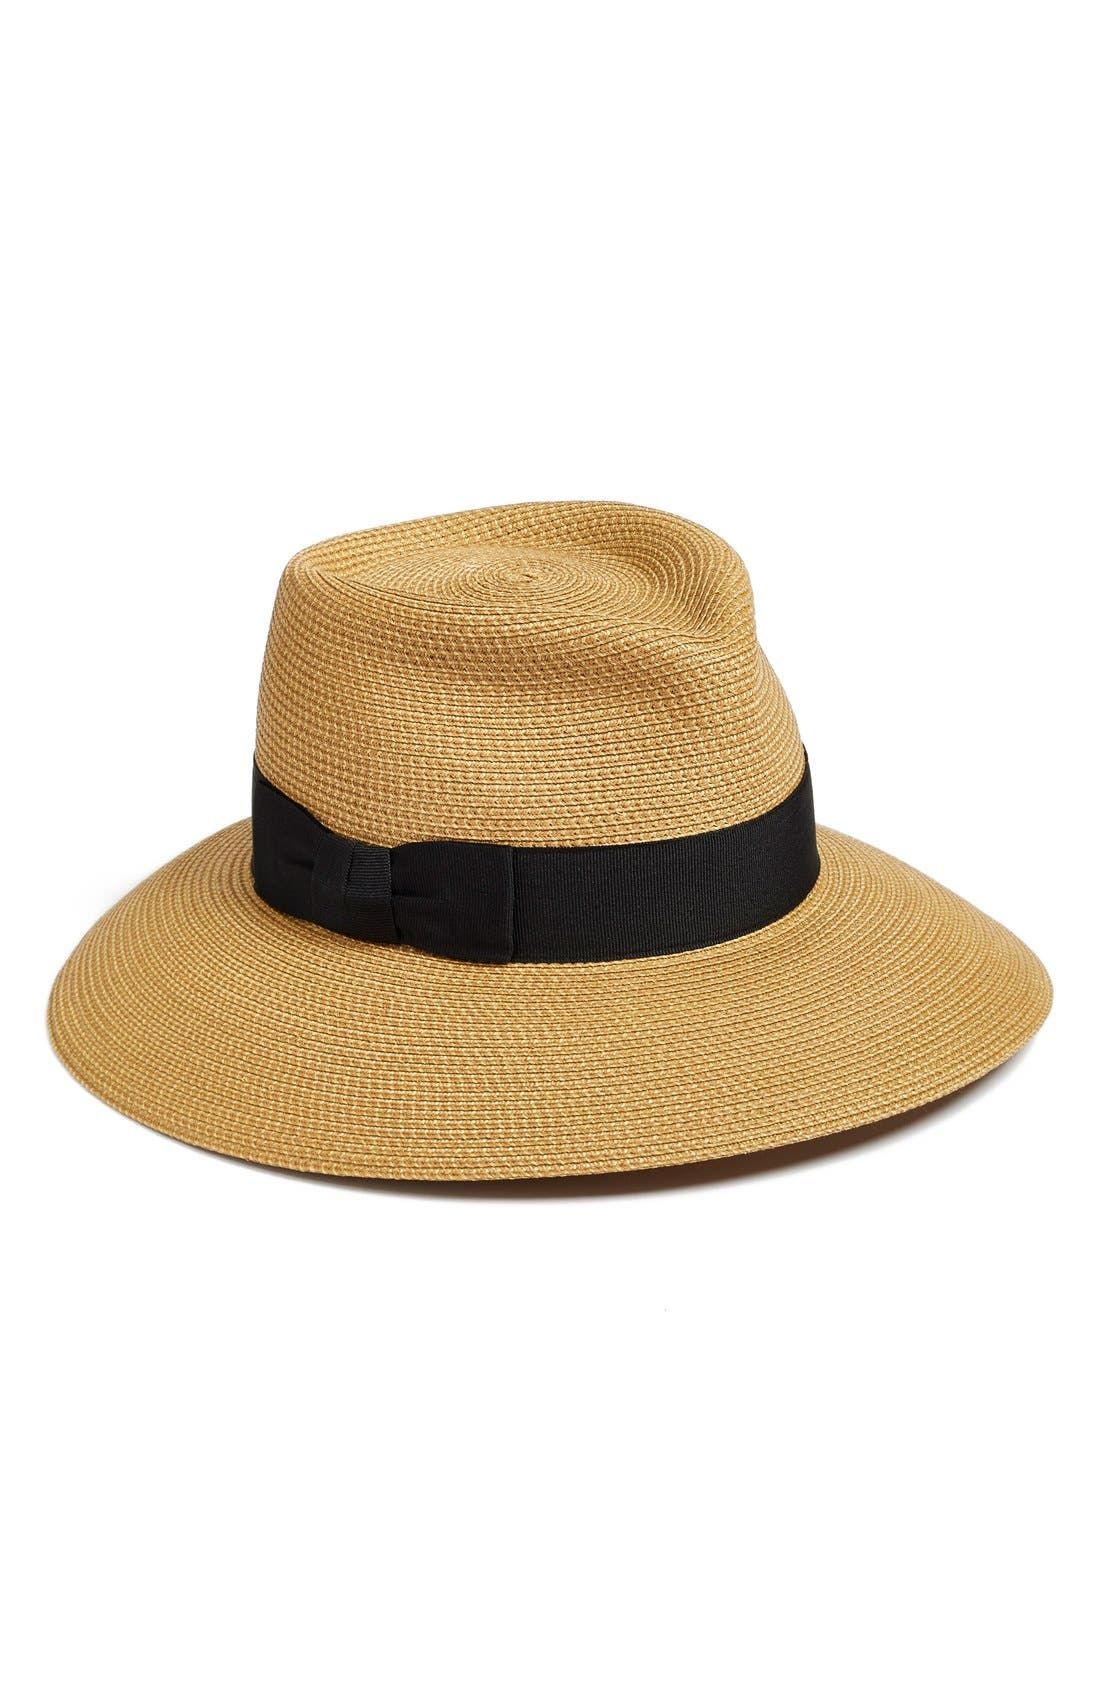 ERIC JAVITS 'Phoenix' Packable Fedora Sun Hat, Main, color, NATURAL/ BLACK